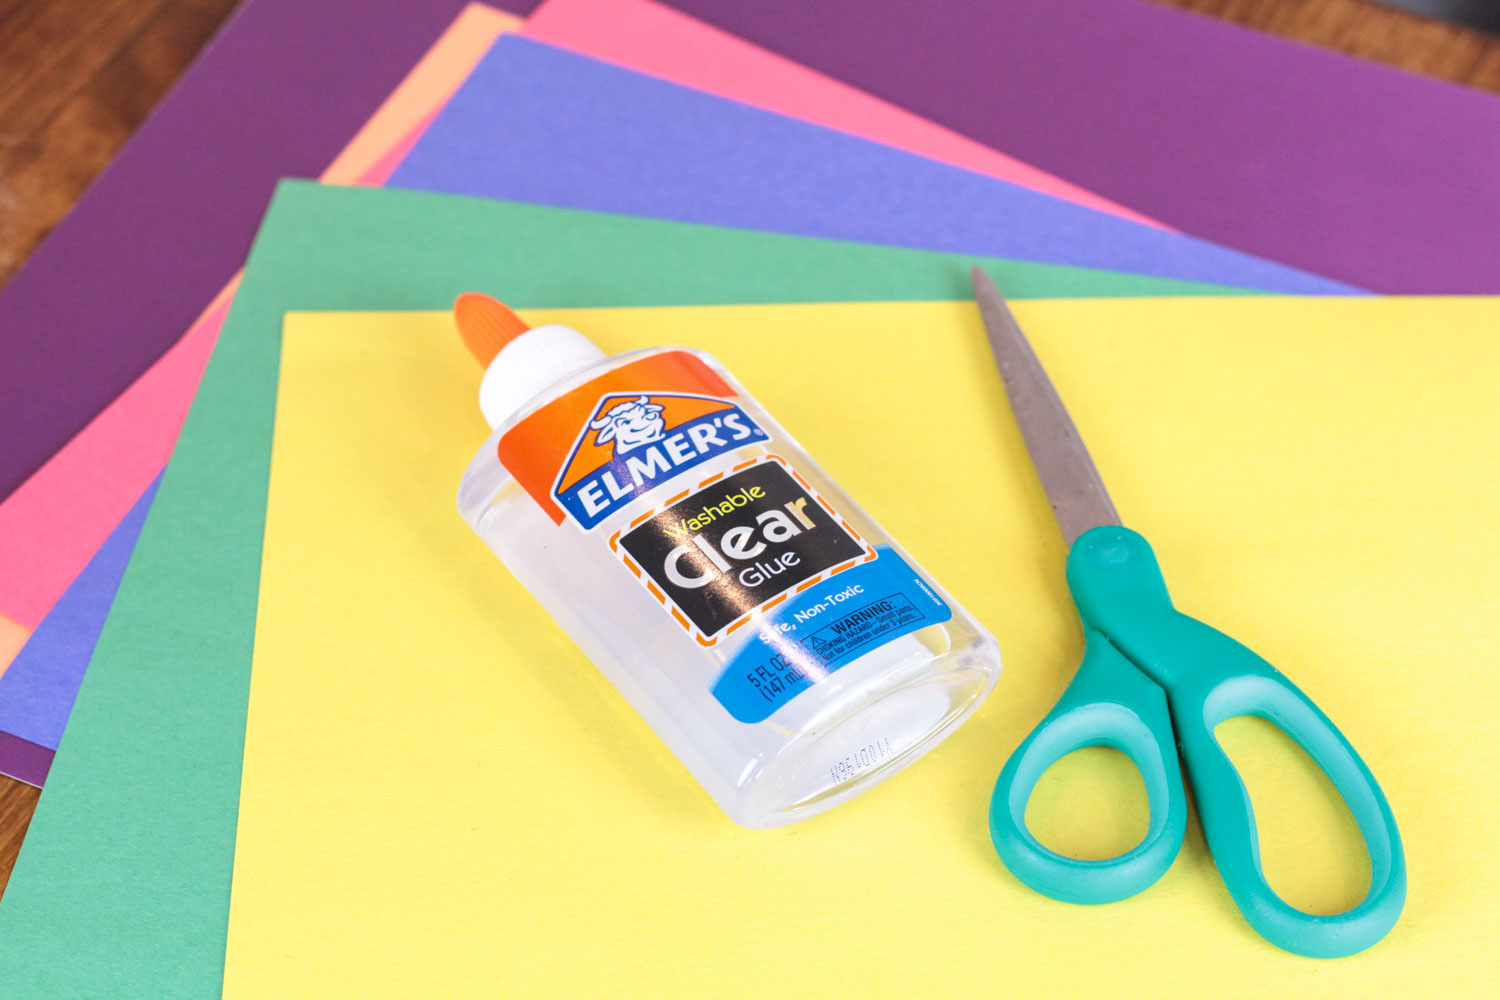 This fun craft helps studnets learn more about colors too! Add this to your other rainbow crafts to learn all about circles and practice scissor skills.